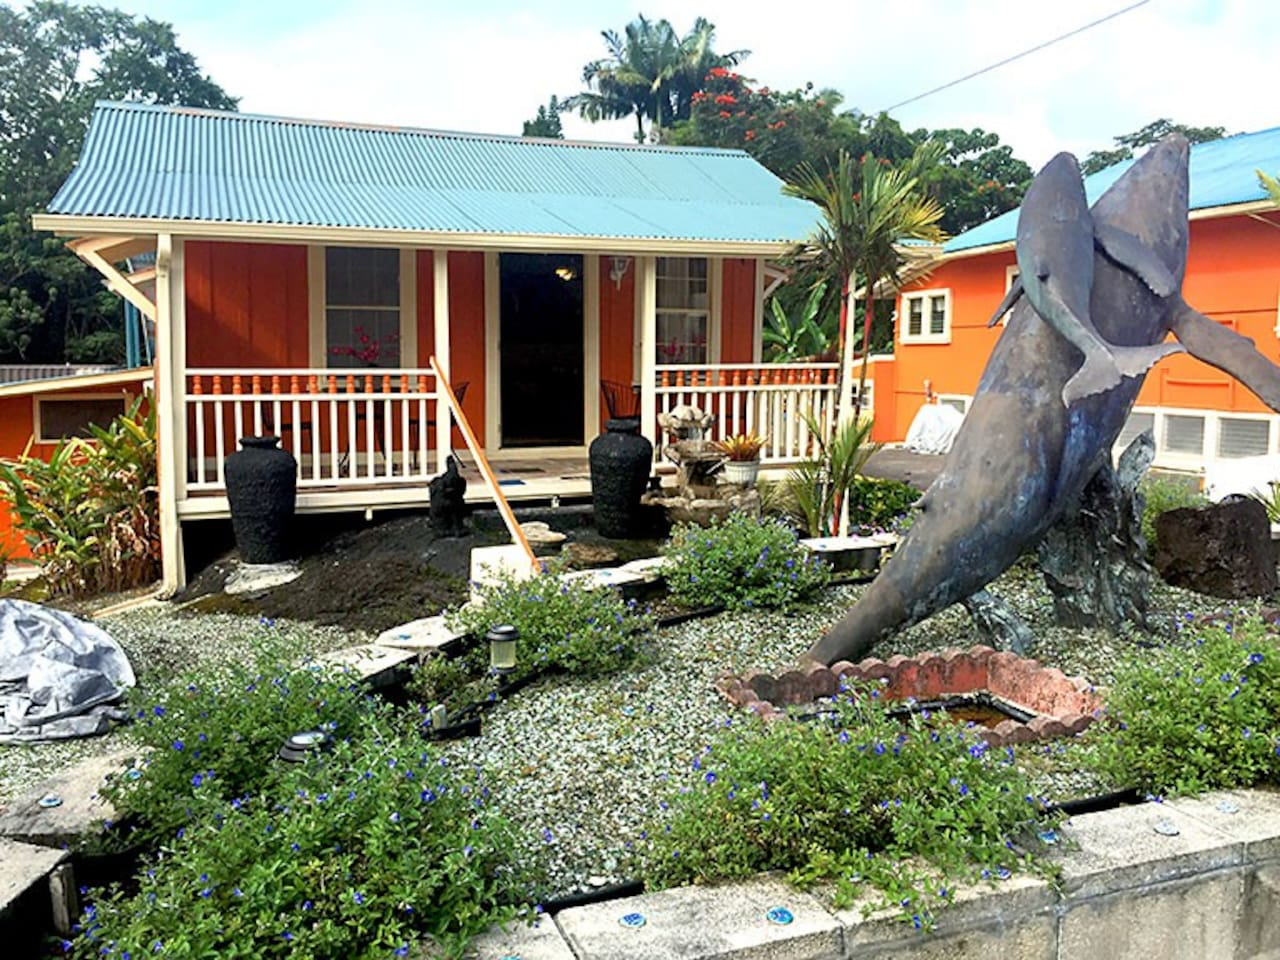 Orchid suite cottage, after recent remodeling.Hand made whale with baby statue mounted in front of Orchid suite.